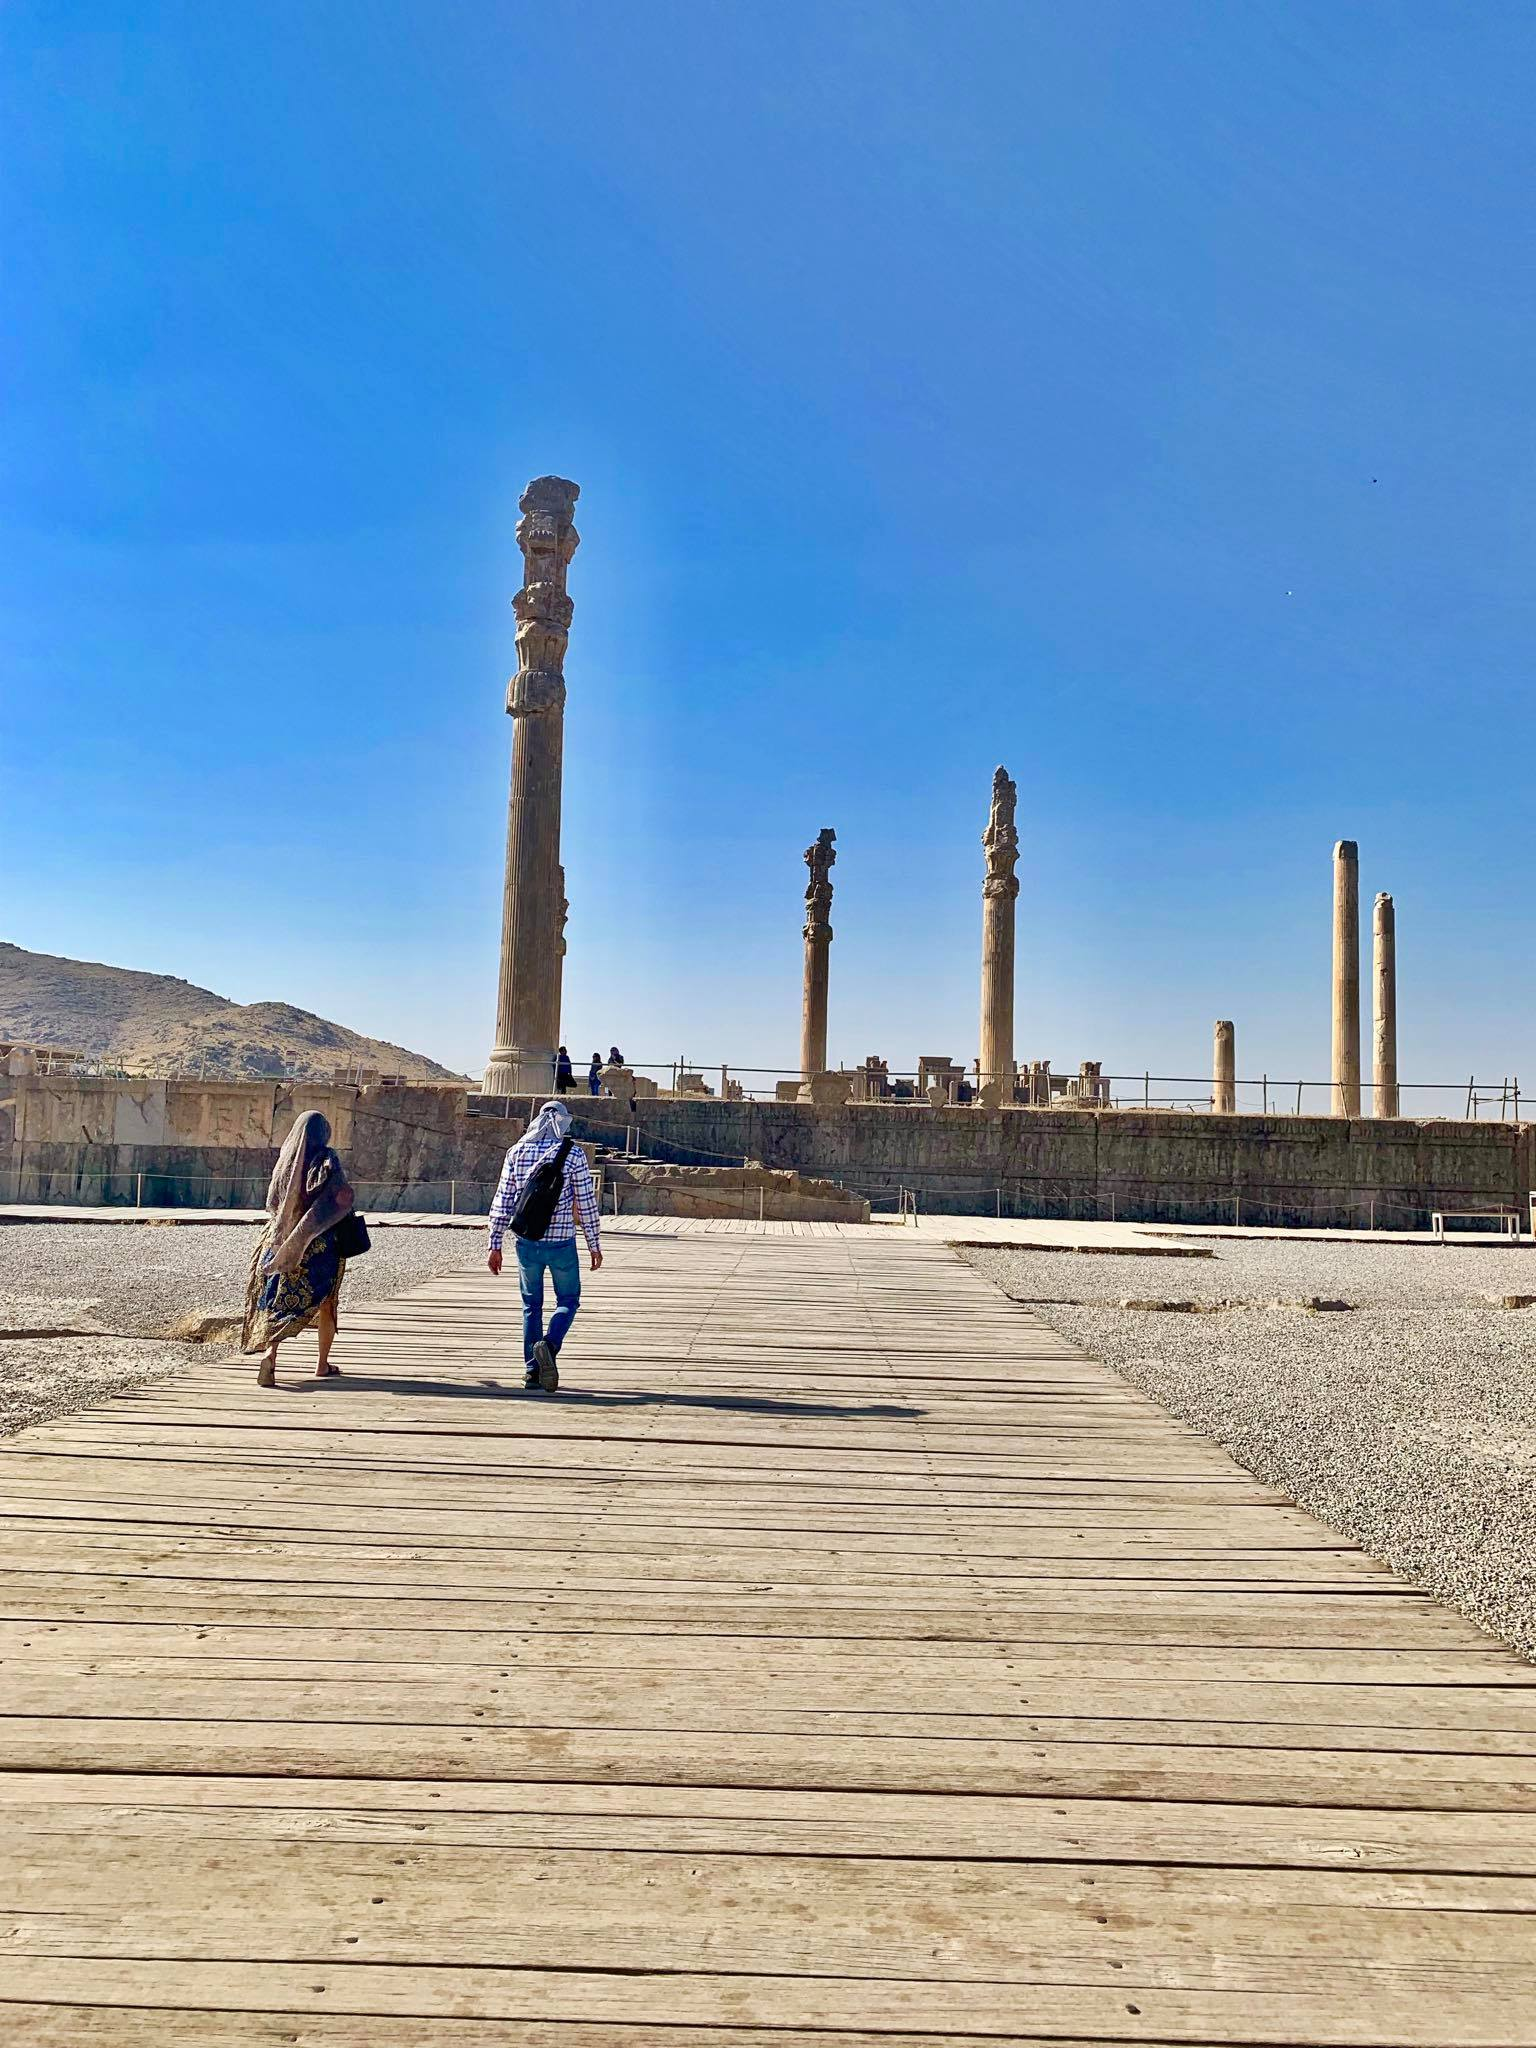 Kach Solo Travels in 2019 UNESCO heritages sites of Persepolis and Pasagardae24.jpg